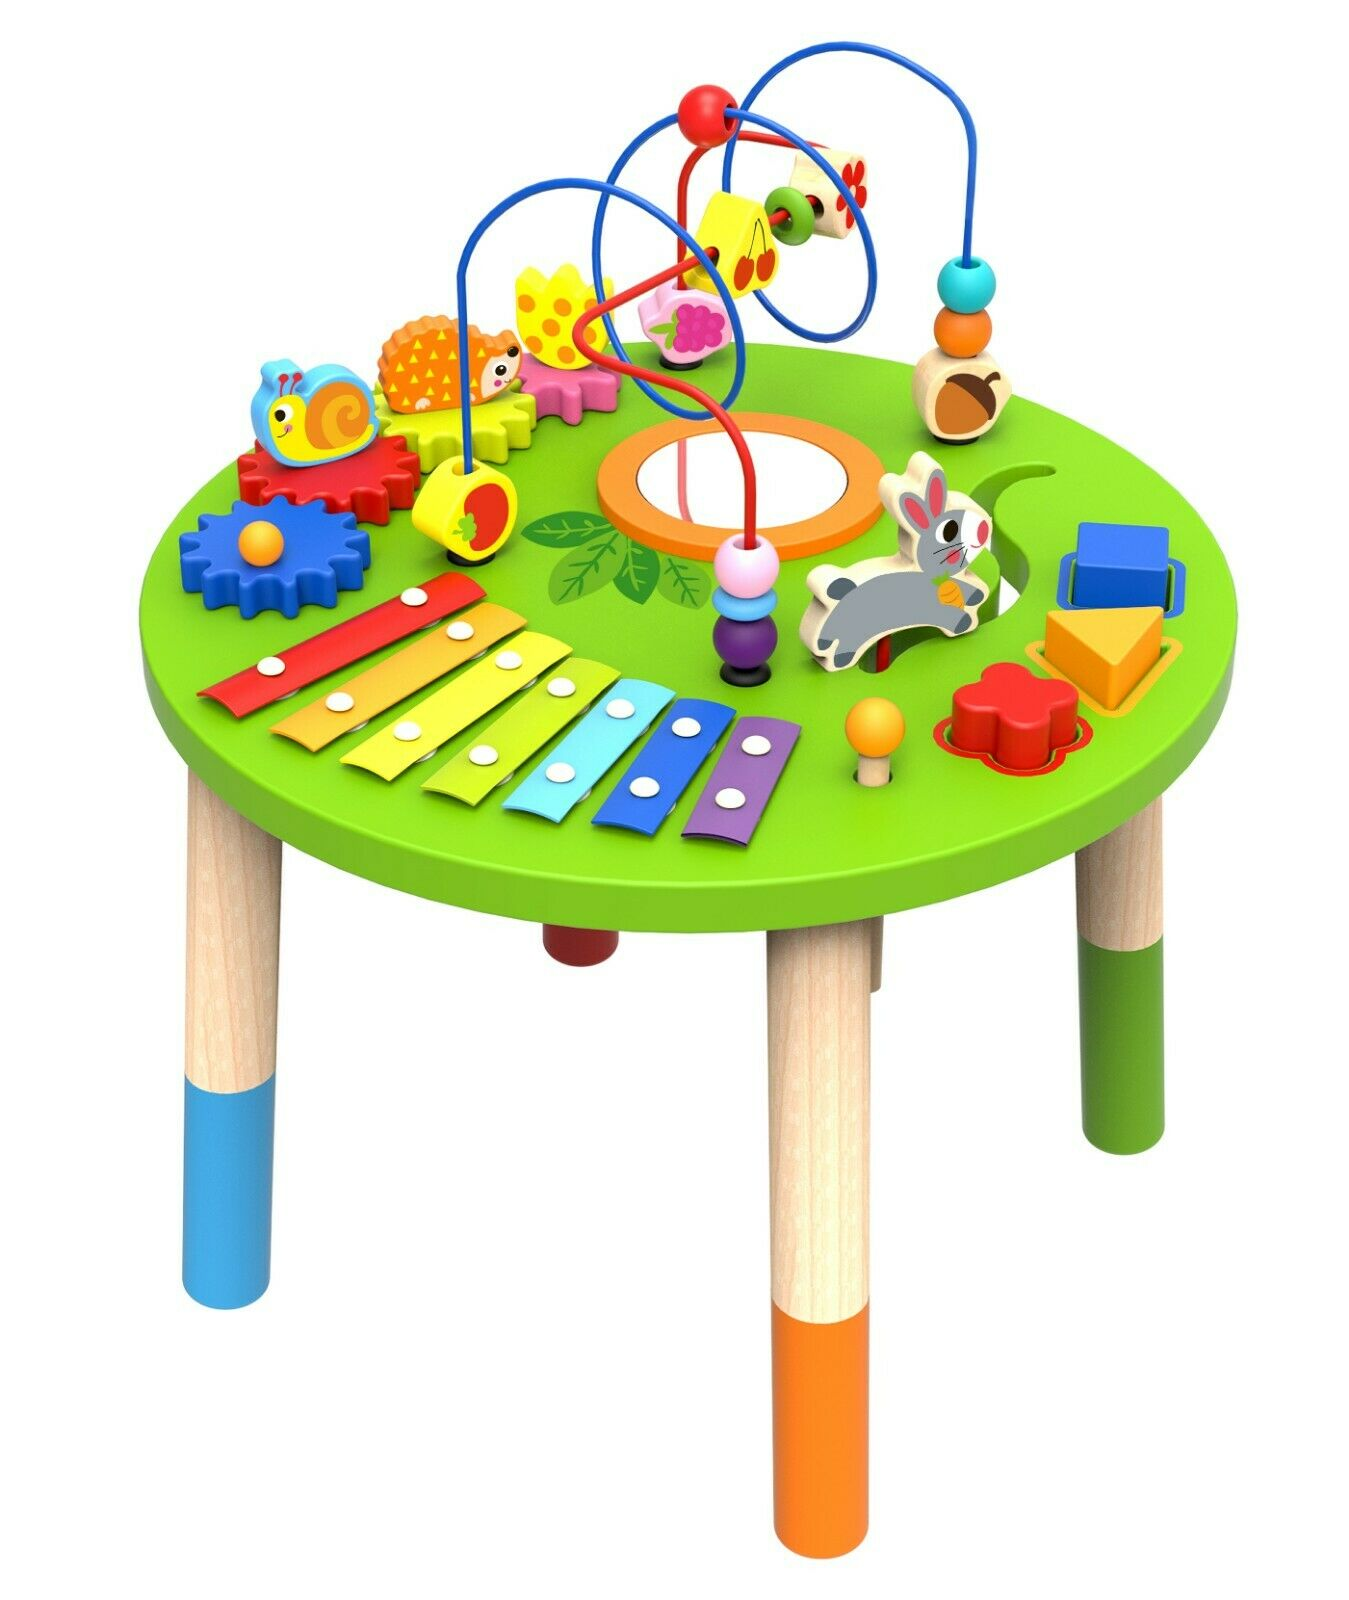 Wooden Activity Table for Toddlers   Multi-Purpose Playset Easel with Bead Maze